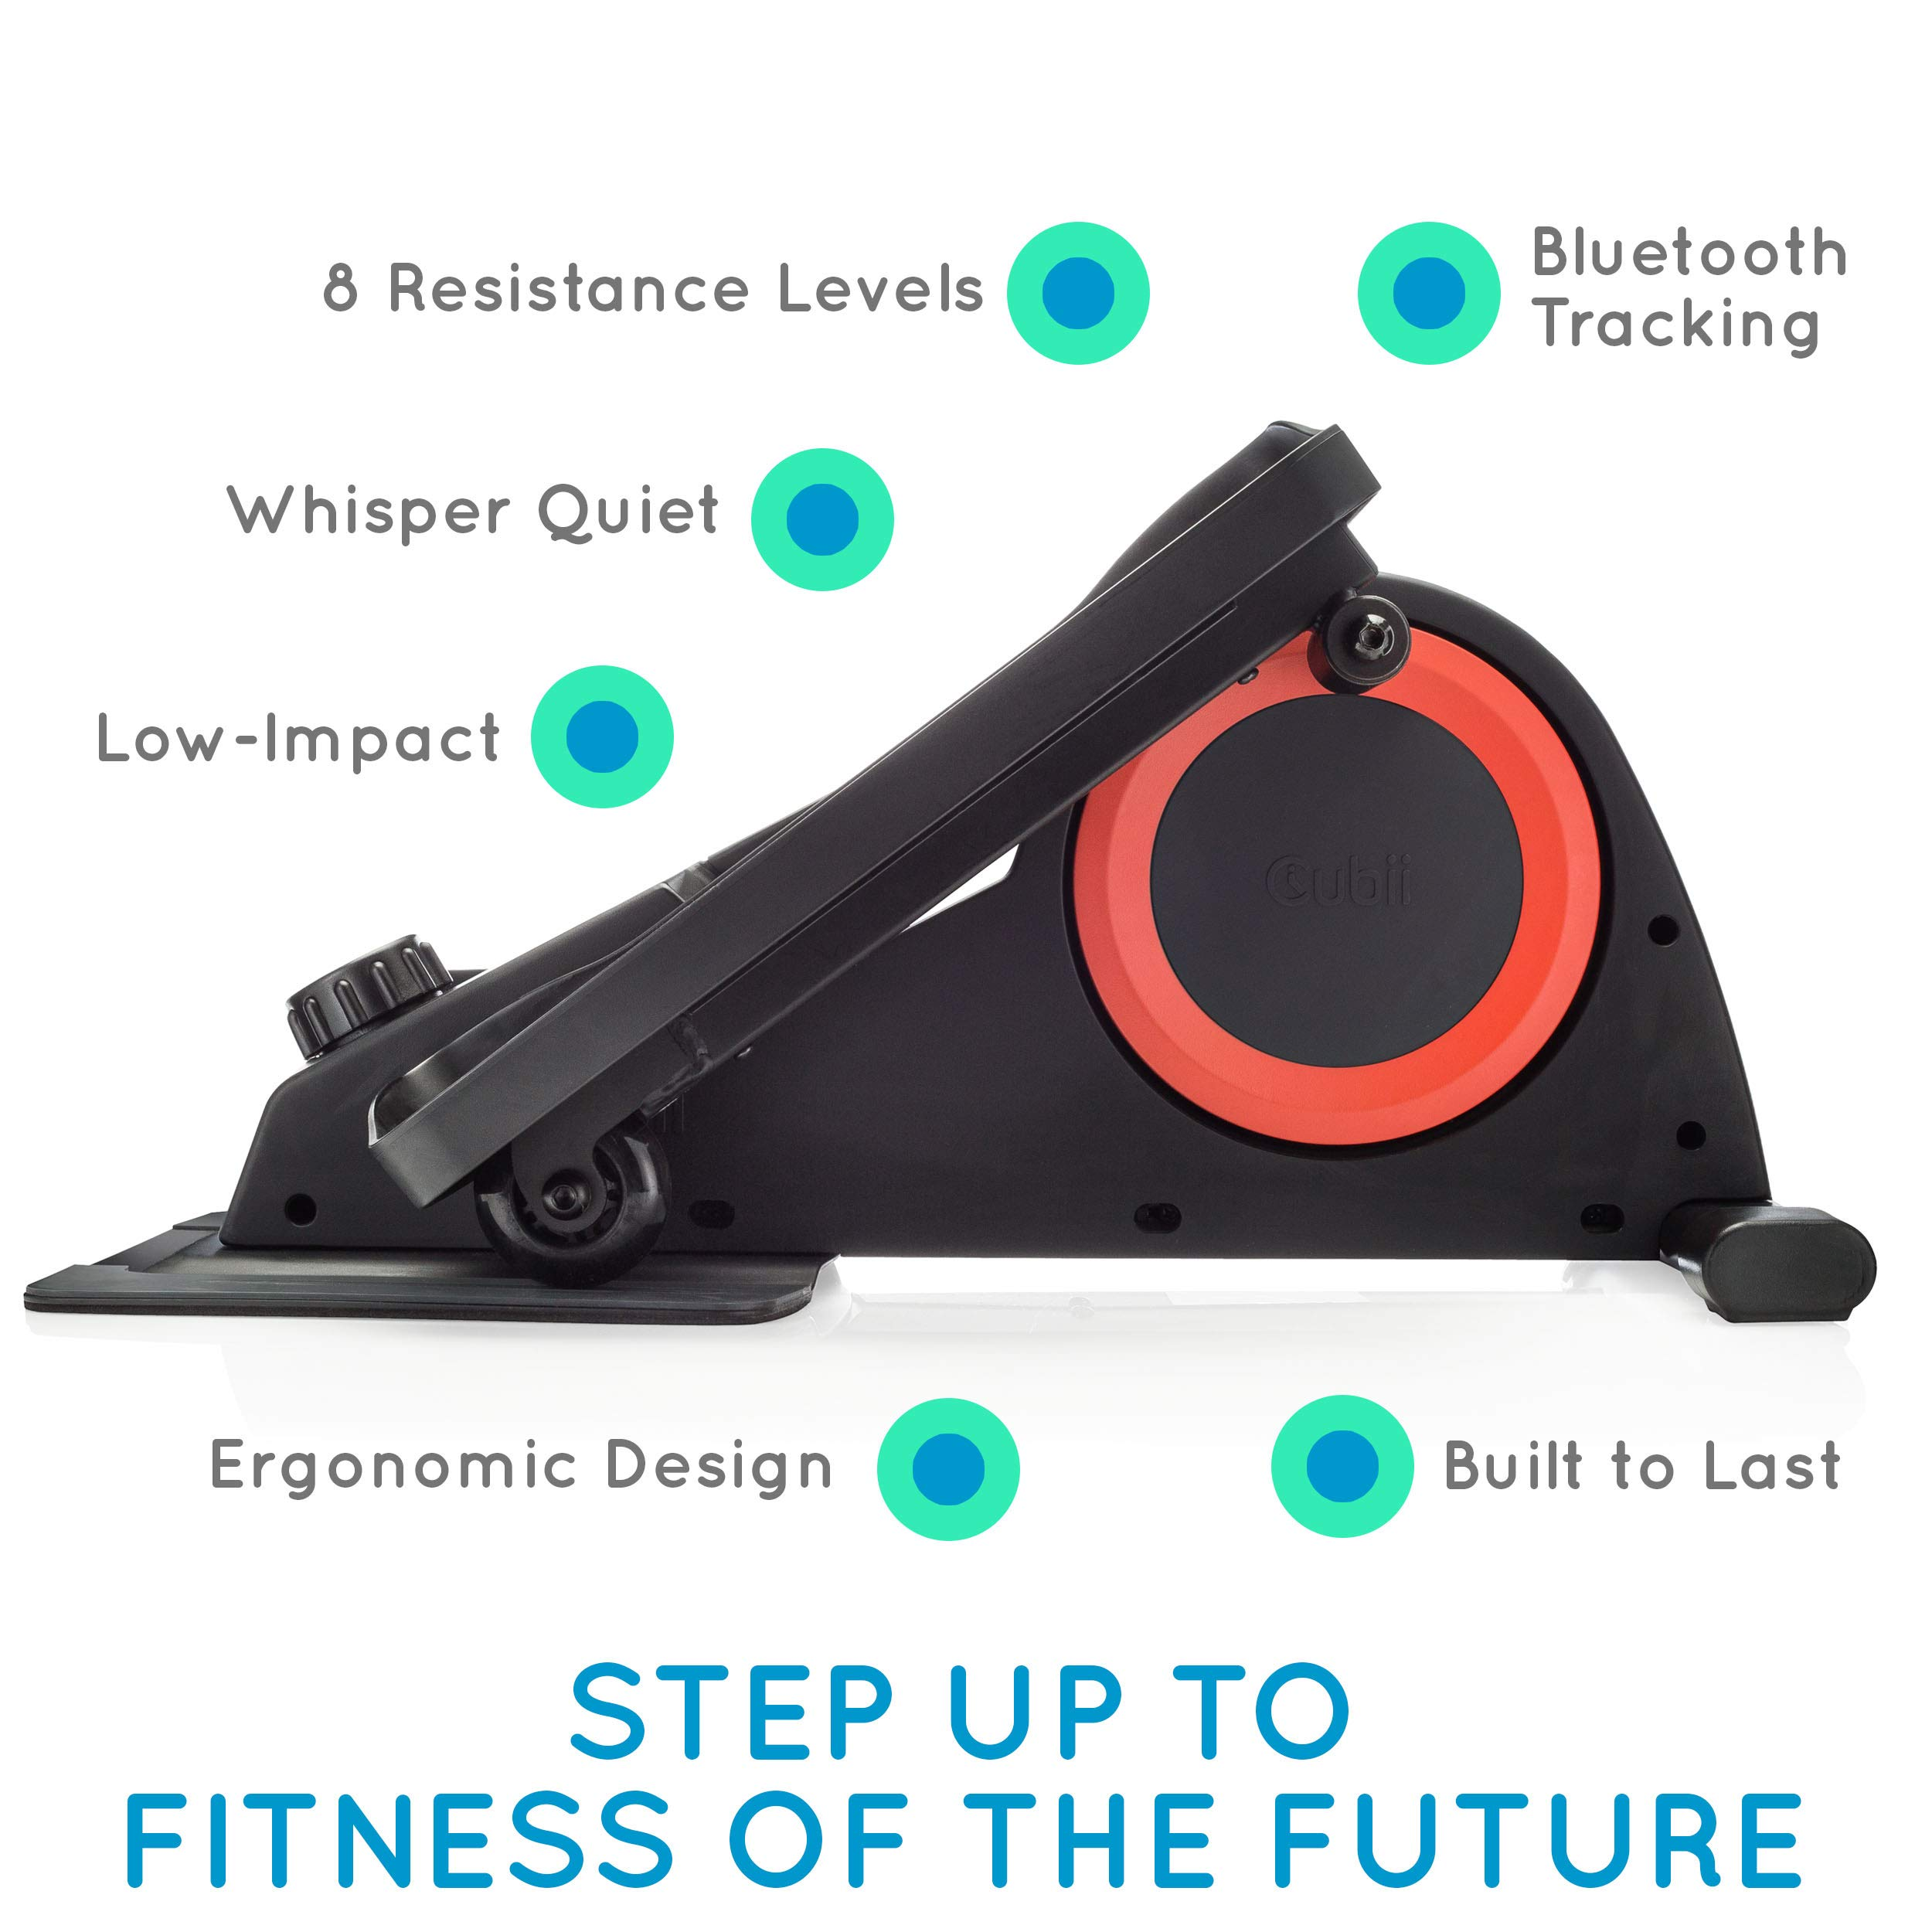 Cubii Pro Under Desk Elliptical, Bluetooth Enabled, Sync with Fitbit and HealthKit, Adjustable Resistance, Easy Assembly (Noir) by Cubii (Image #2)